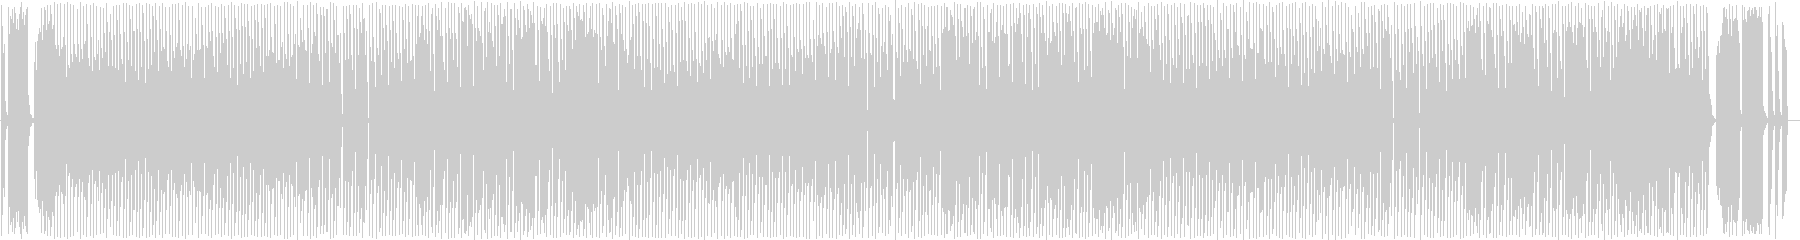 Comical pop songs's unreproduced waveform